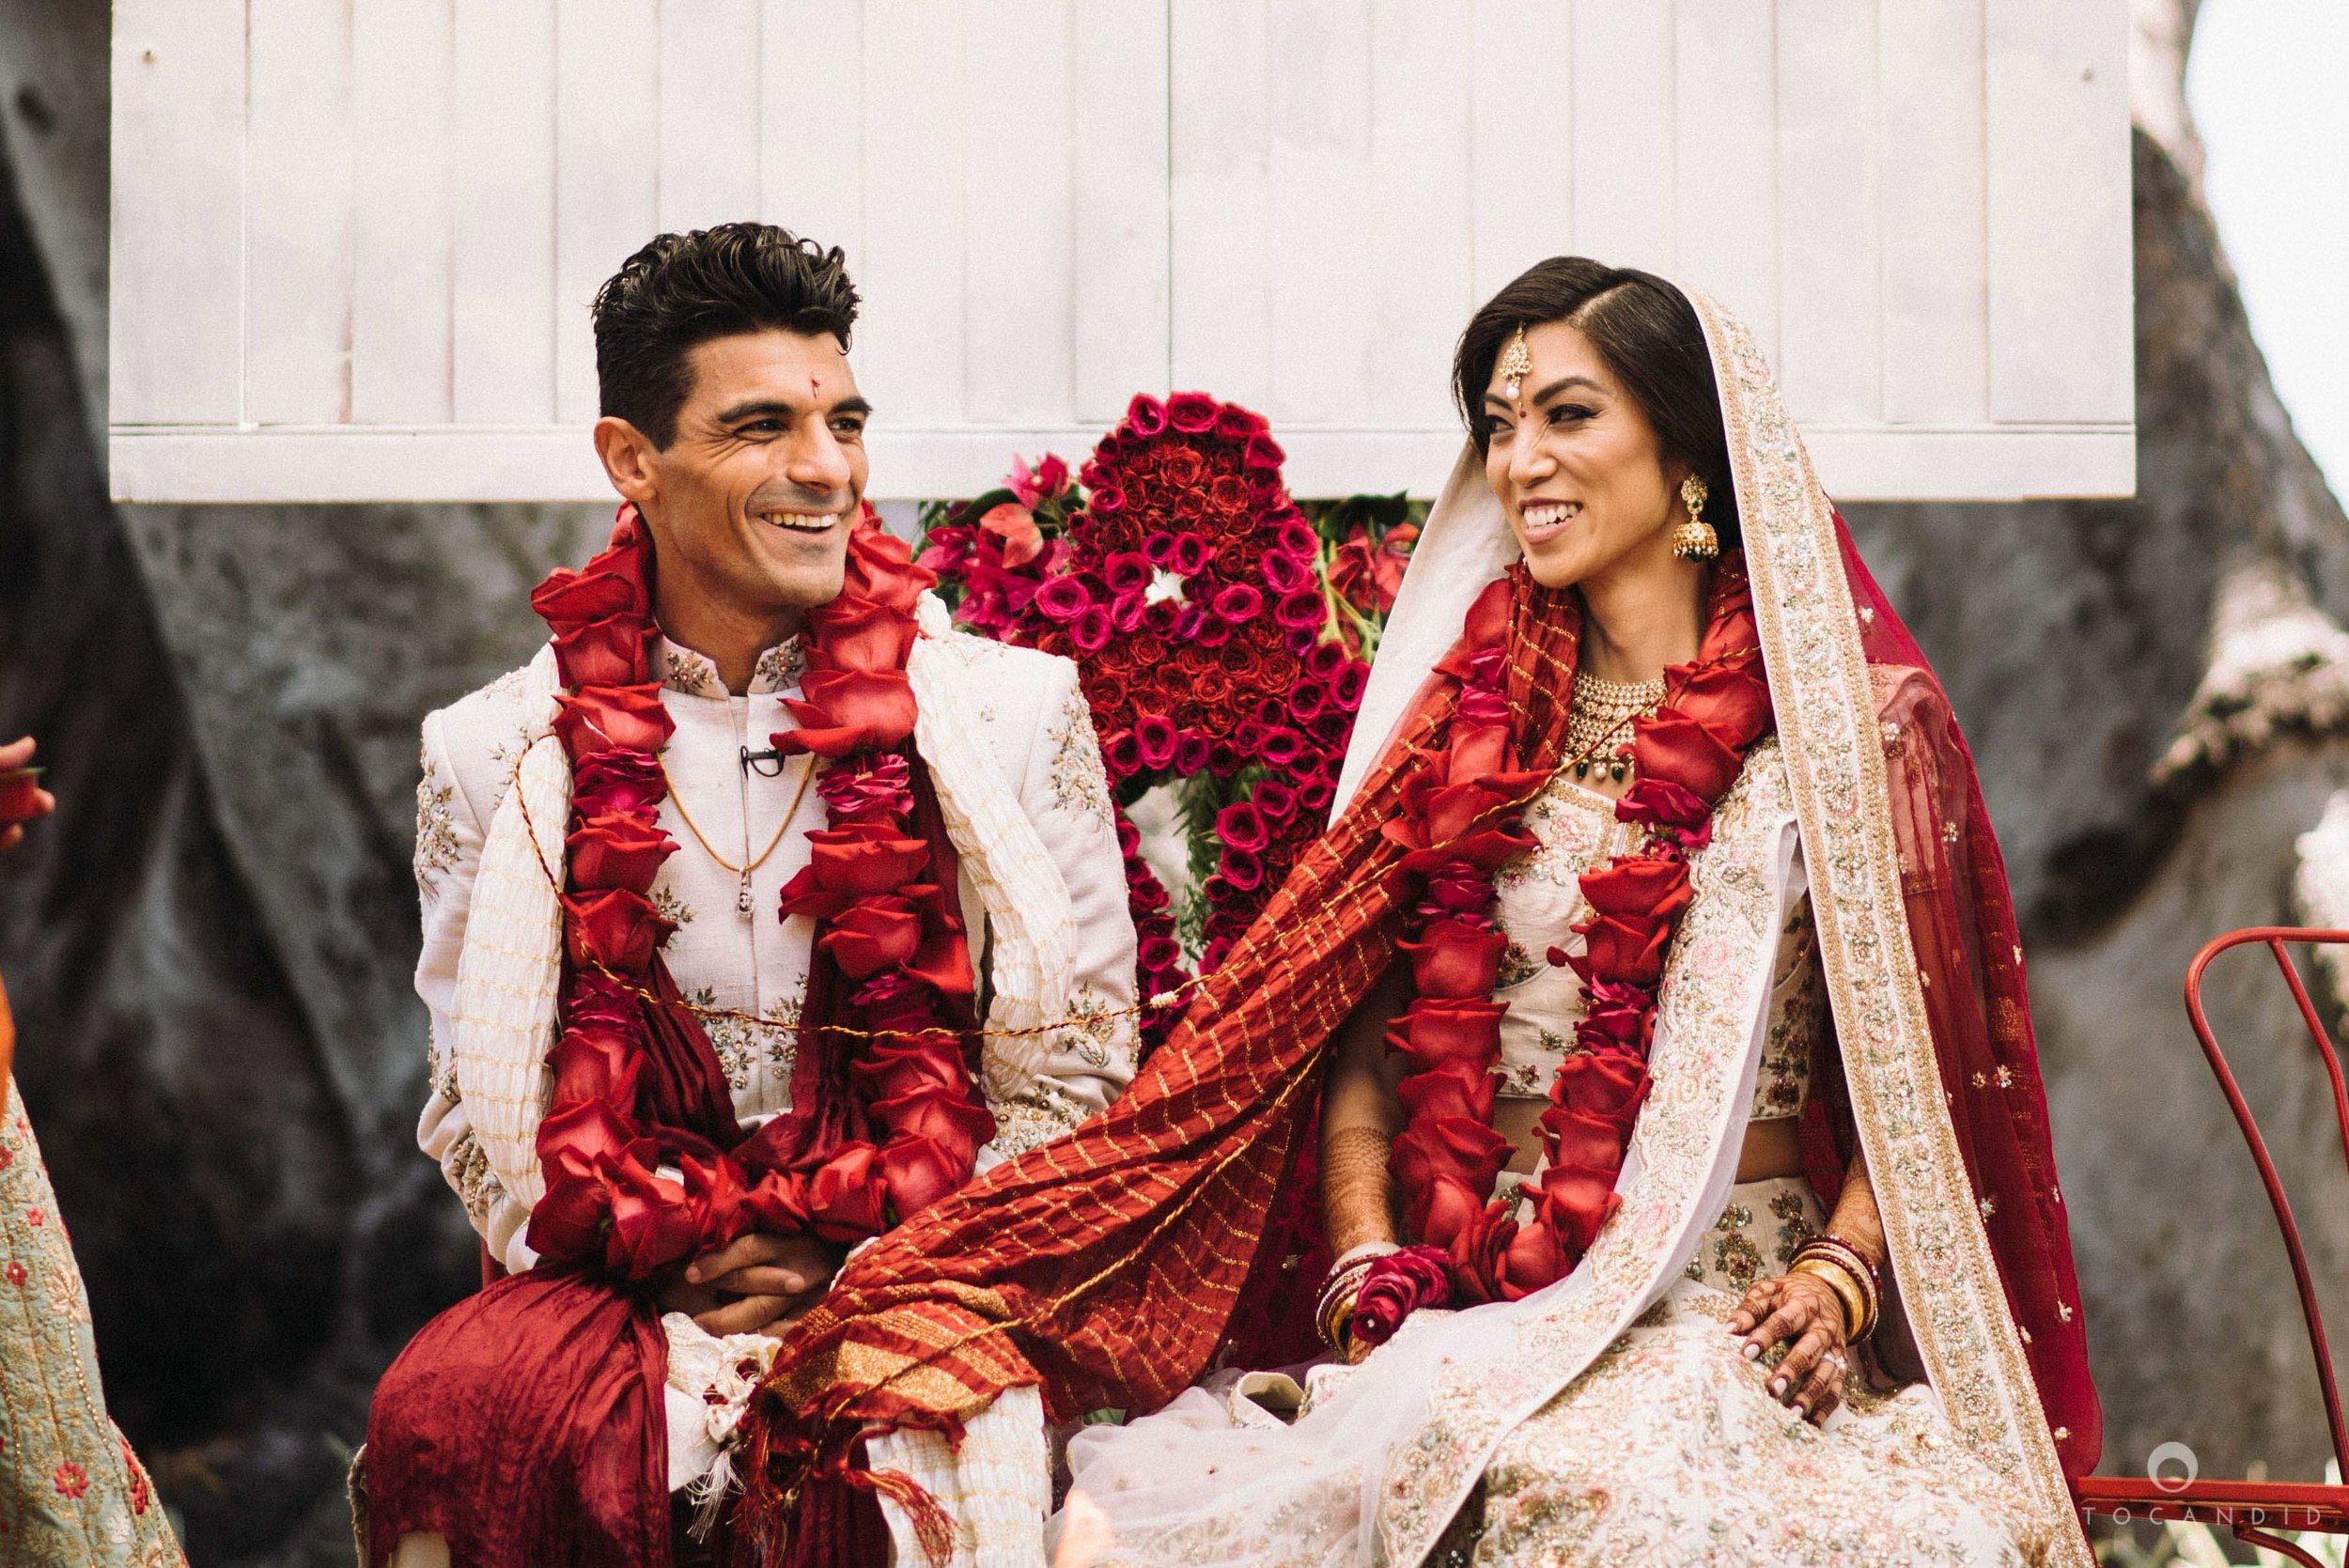 LosAngeles_Indian_Wedding_Photographer_AS_108.jpg